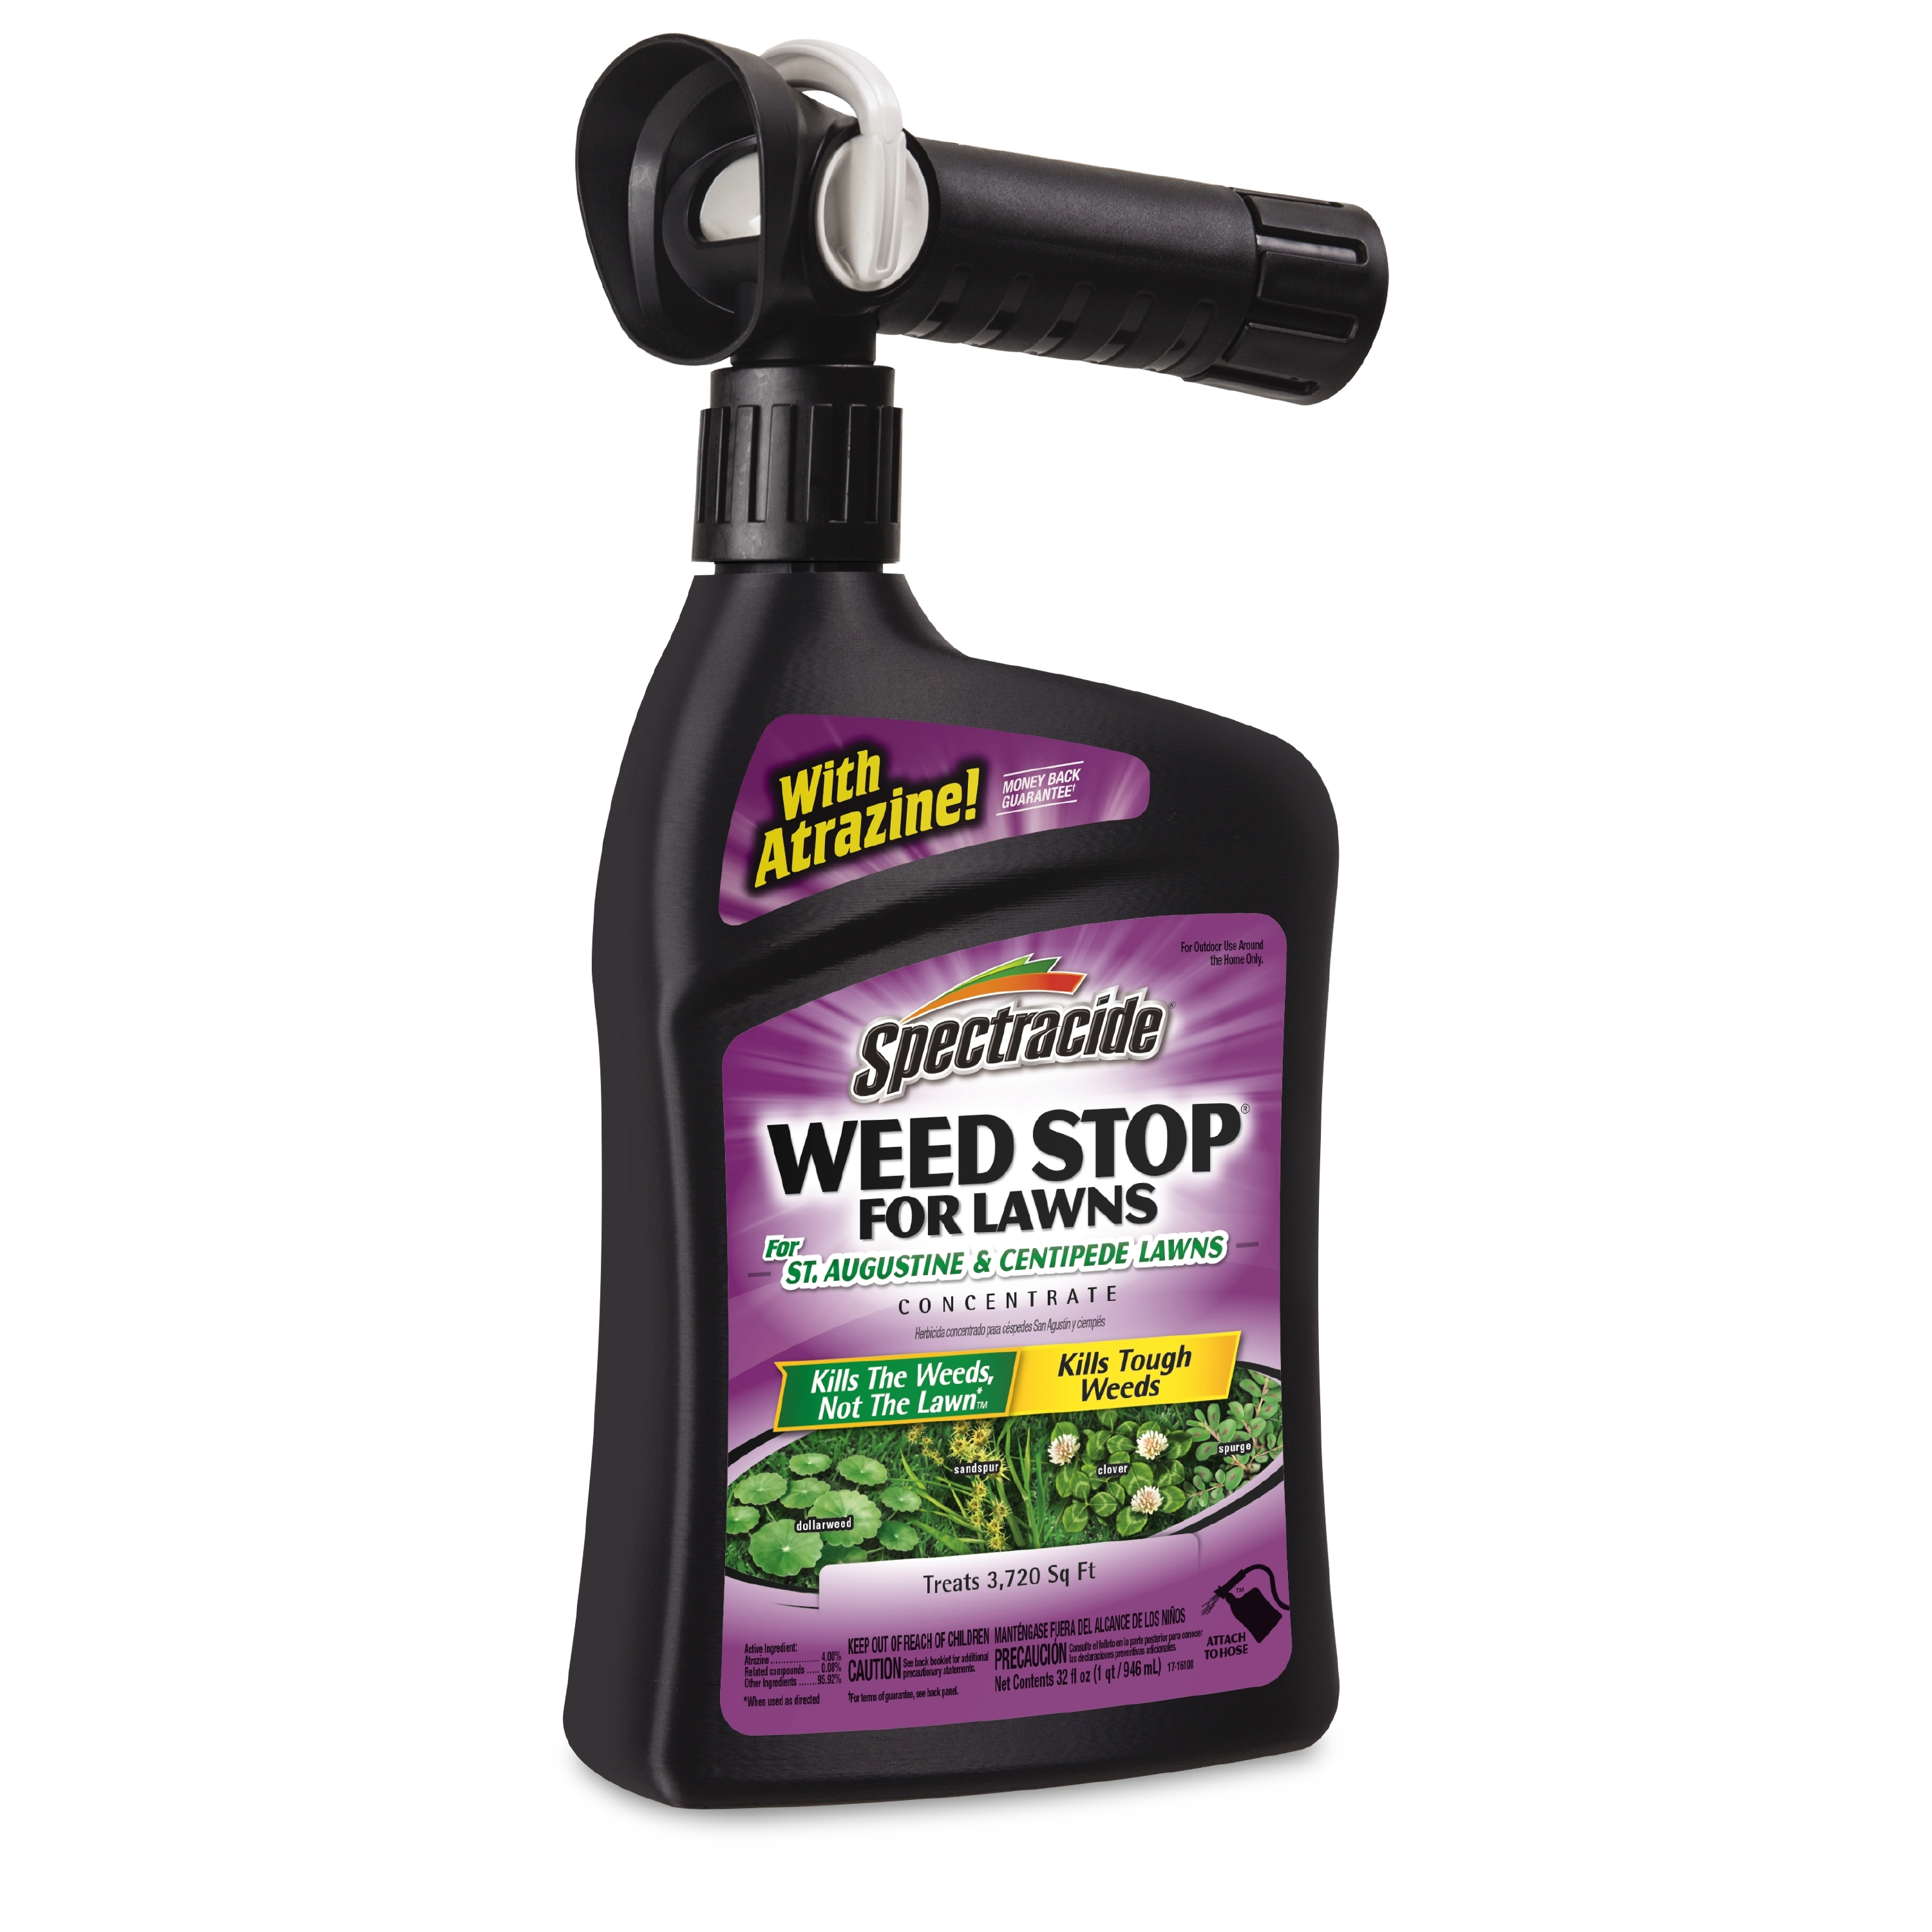 Spectracide Weed Stop St. Augustine & Centipede, 32-Ounce